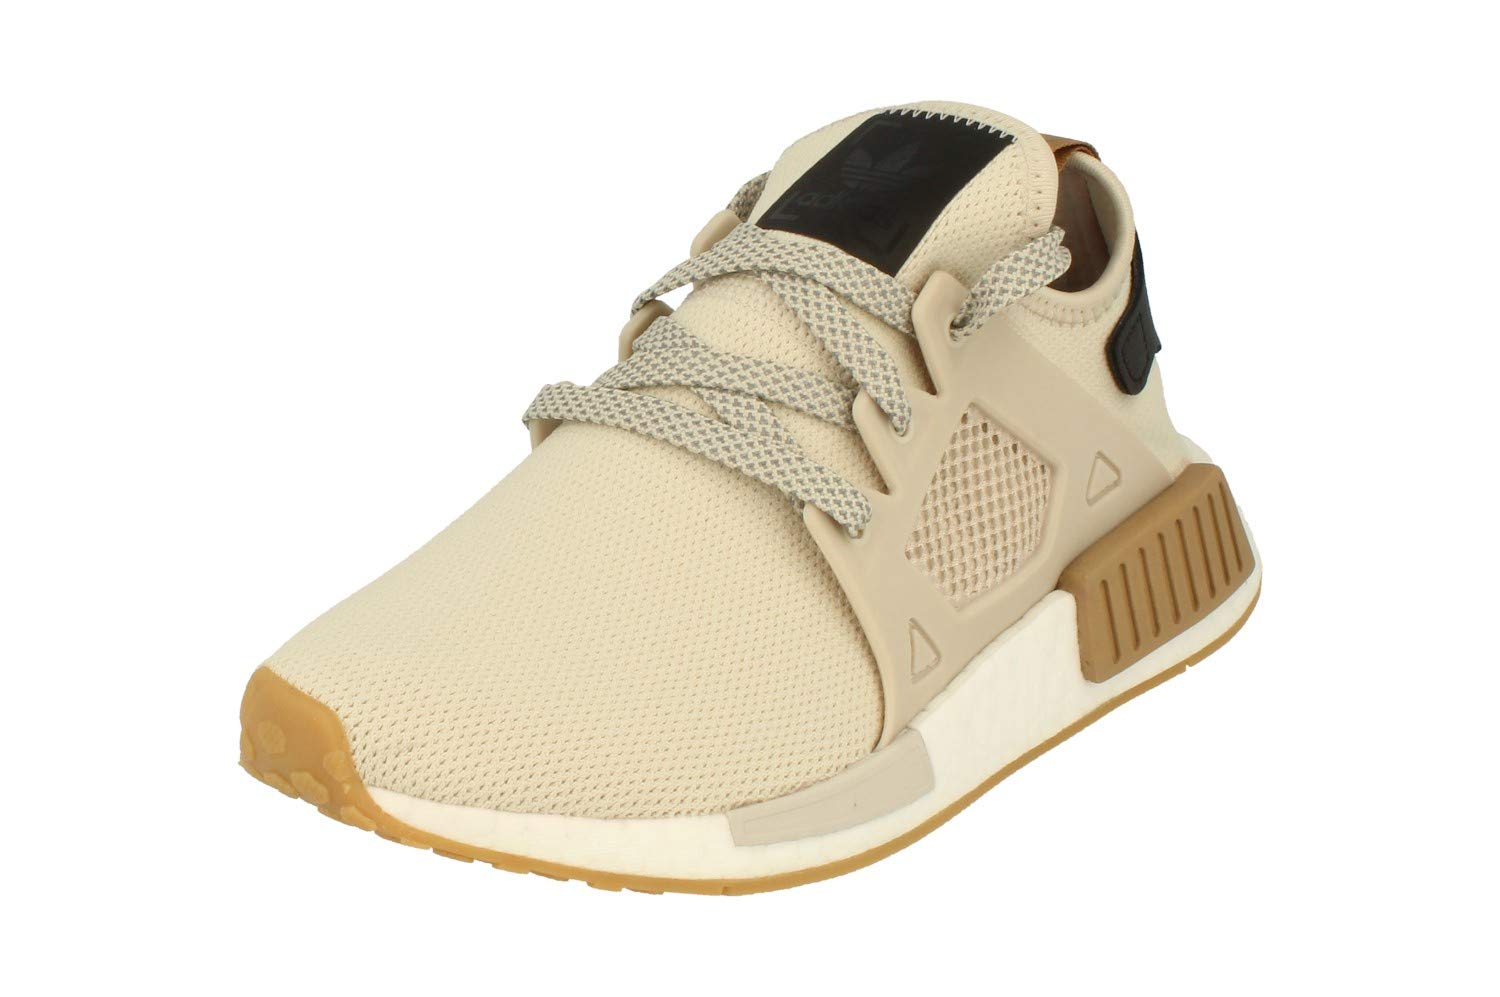 d373bb47e1435 Galleon - Adidas Originals NMD Xr1 Mens Running Trainers Sneakers Shoes (UK  6 US 6.5 EU 39 1 3